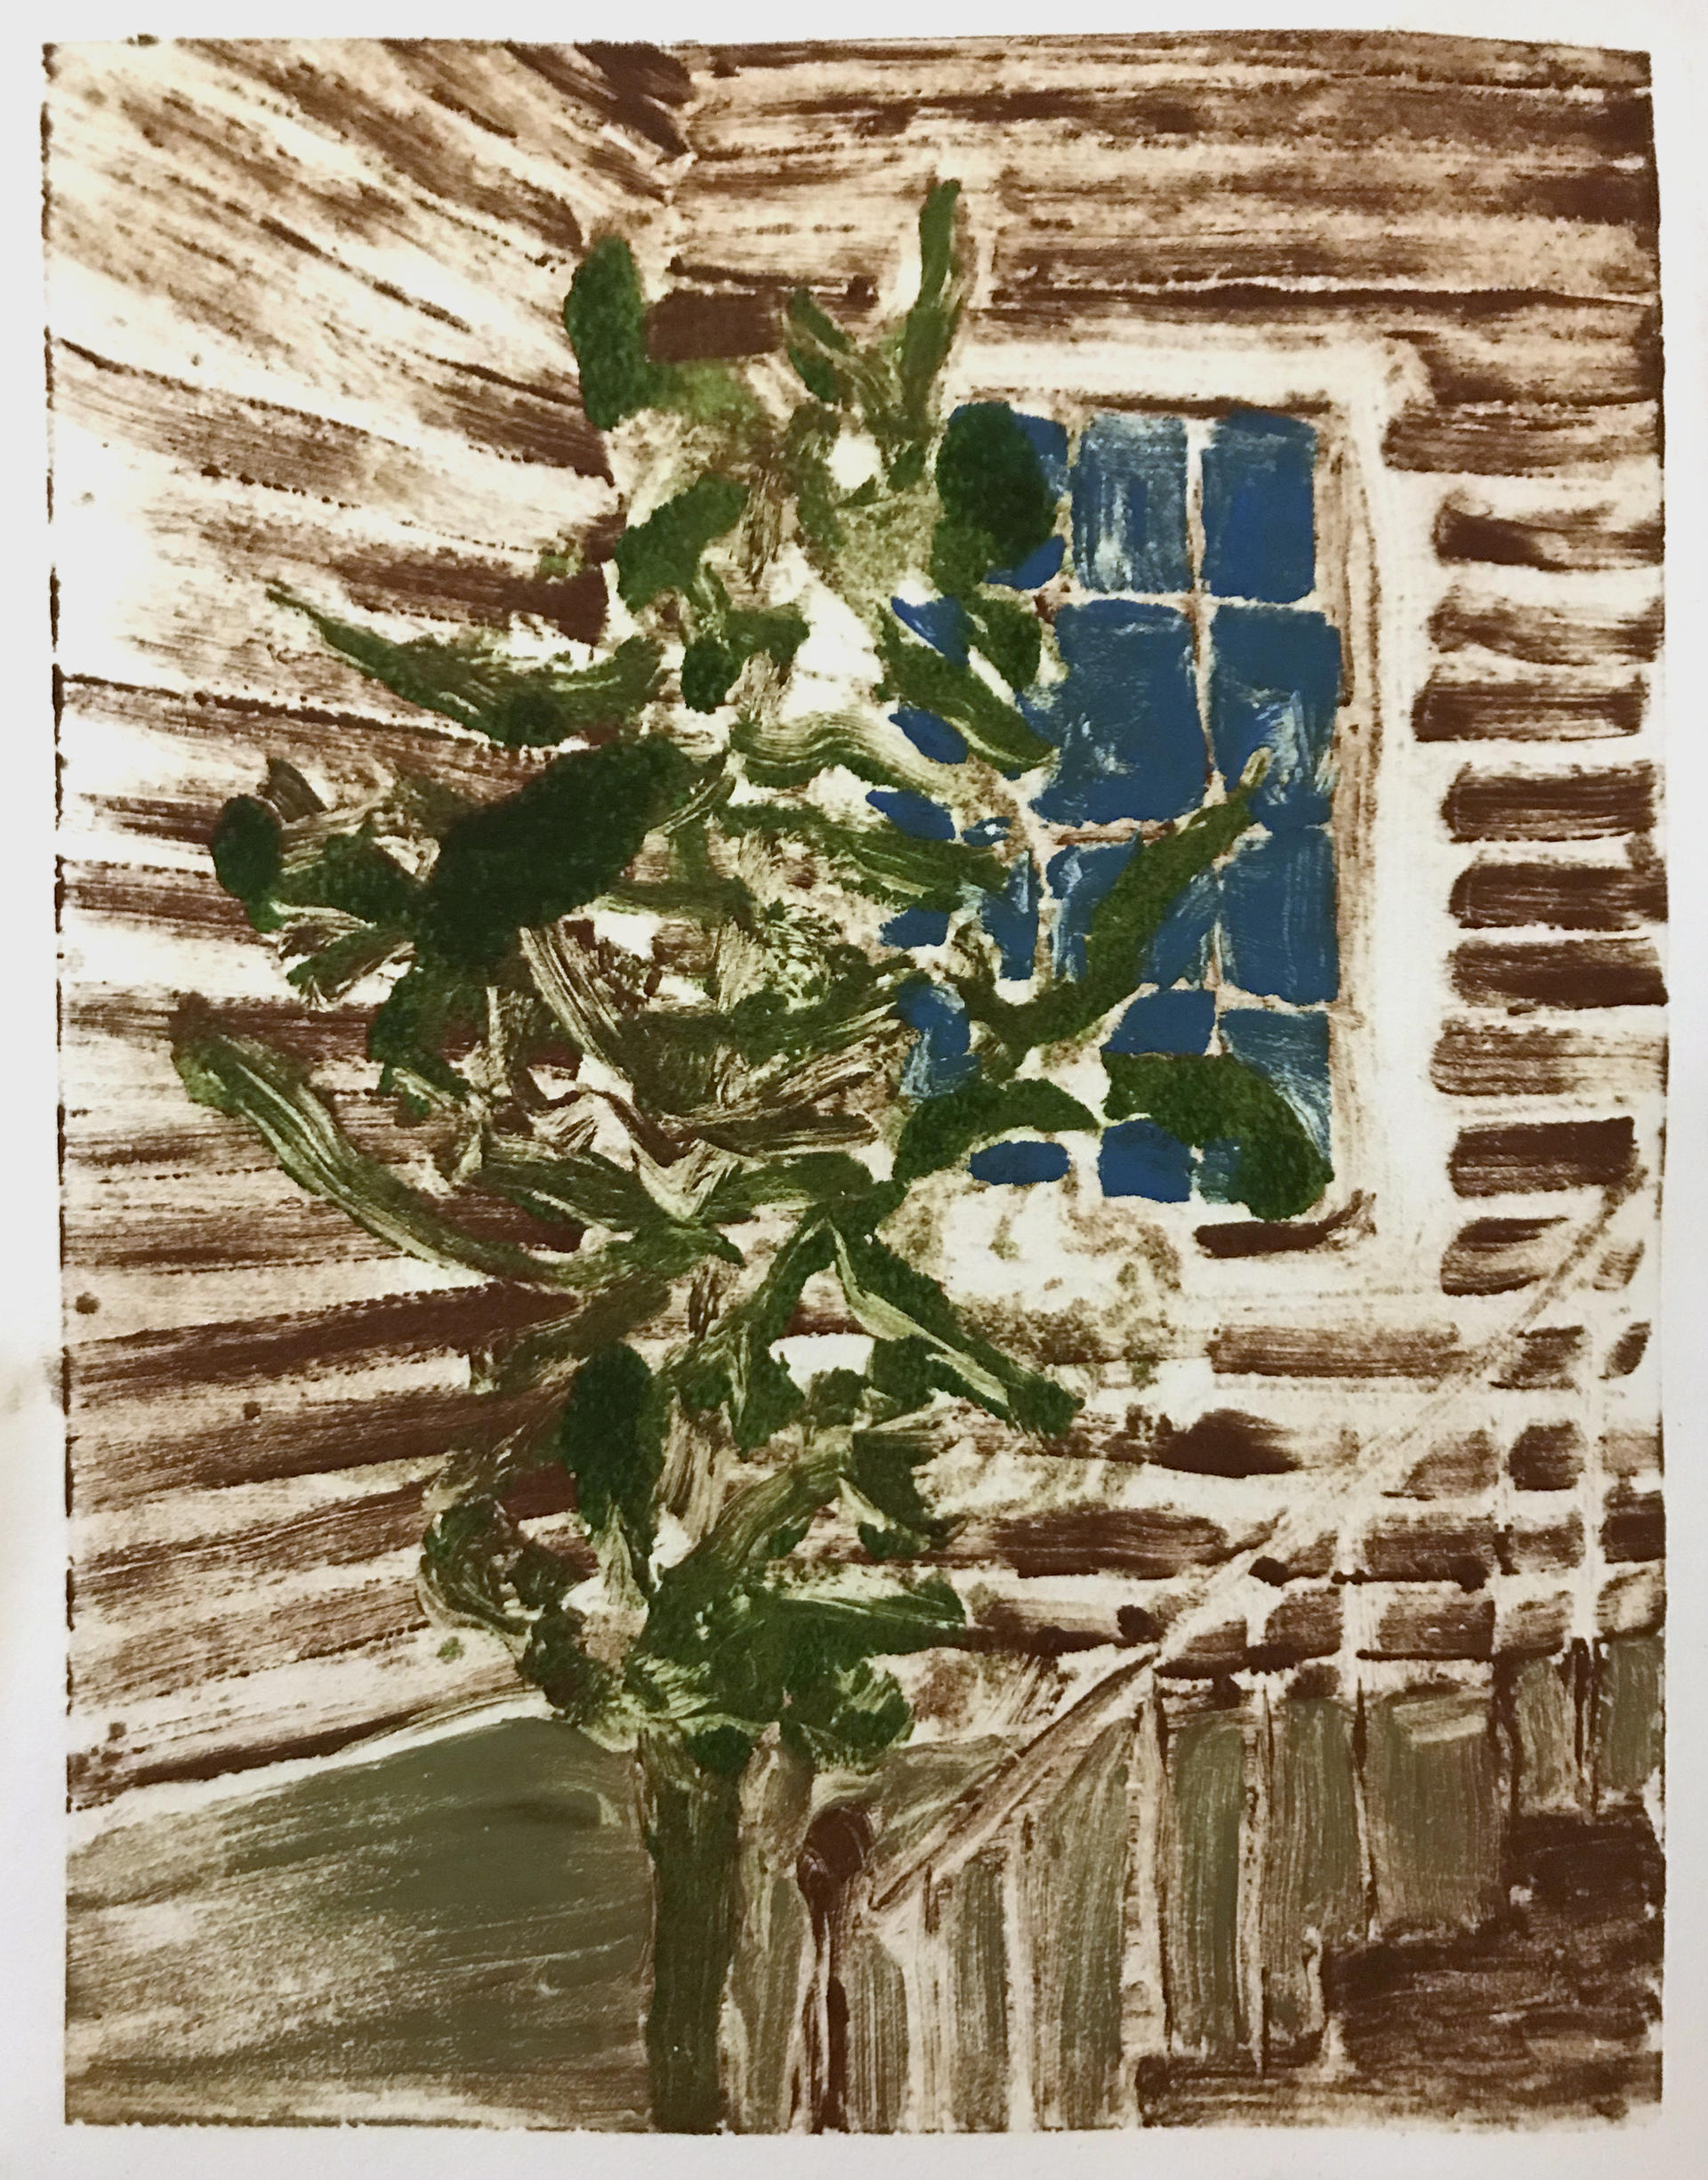 small print of a backyard with a tree, a window, and porch stairs